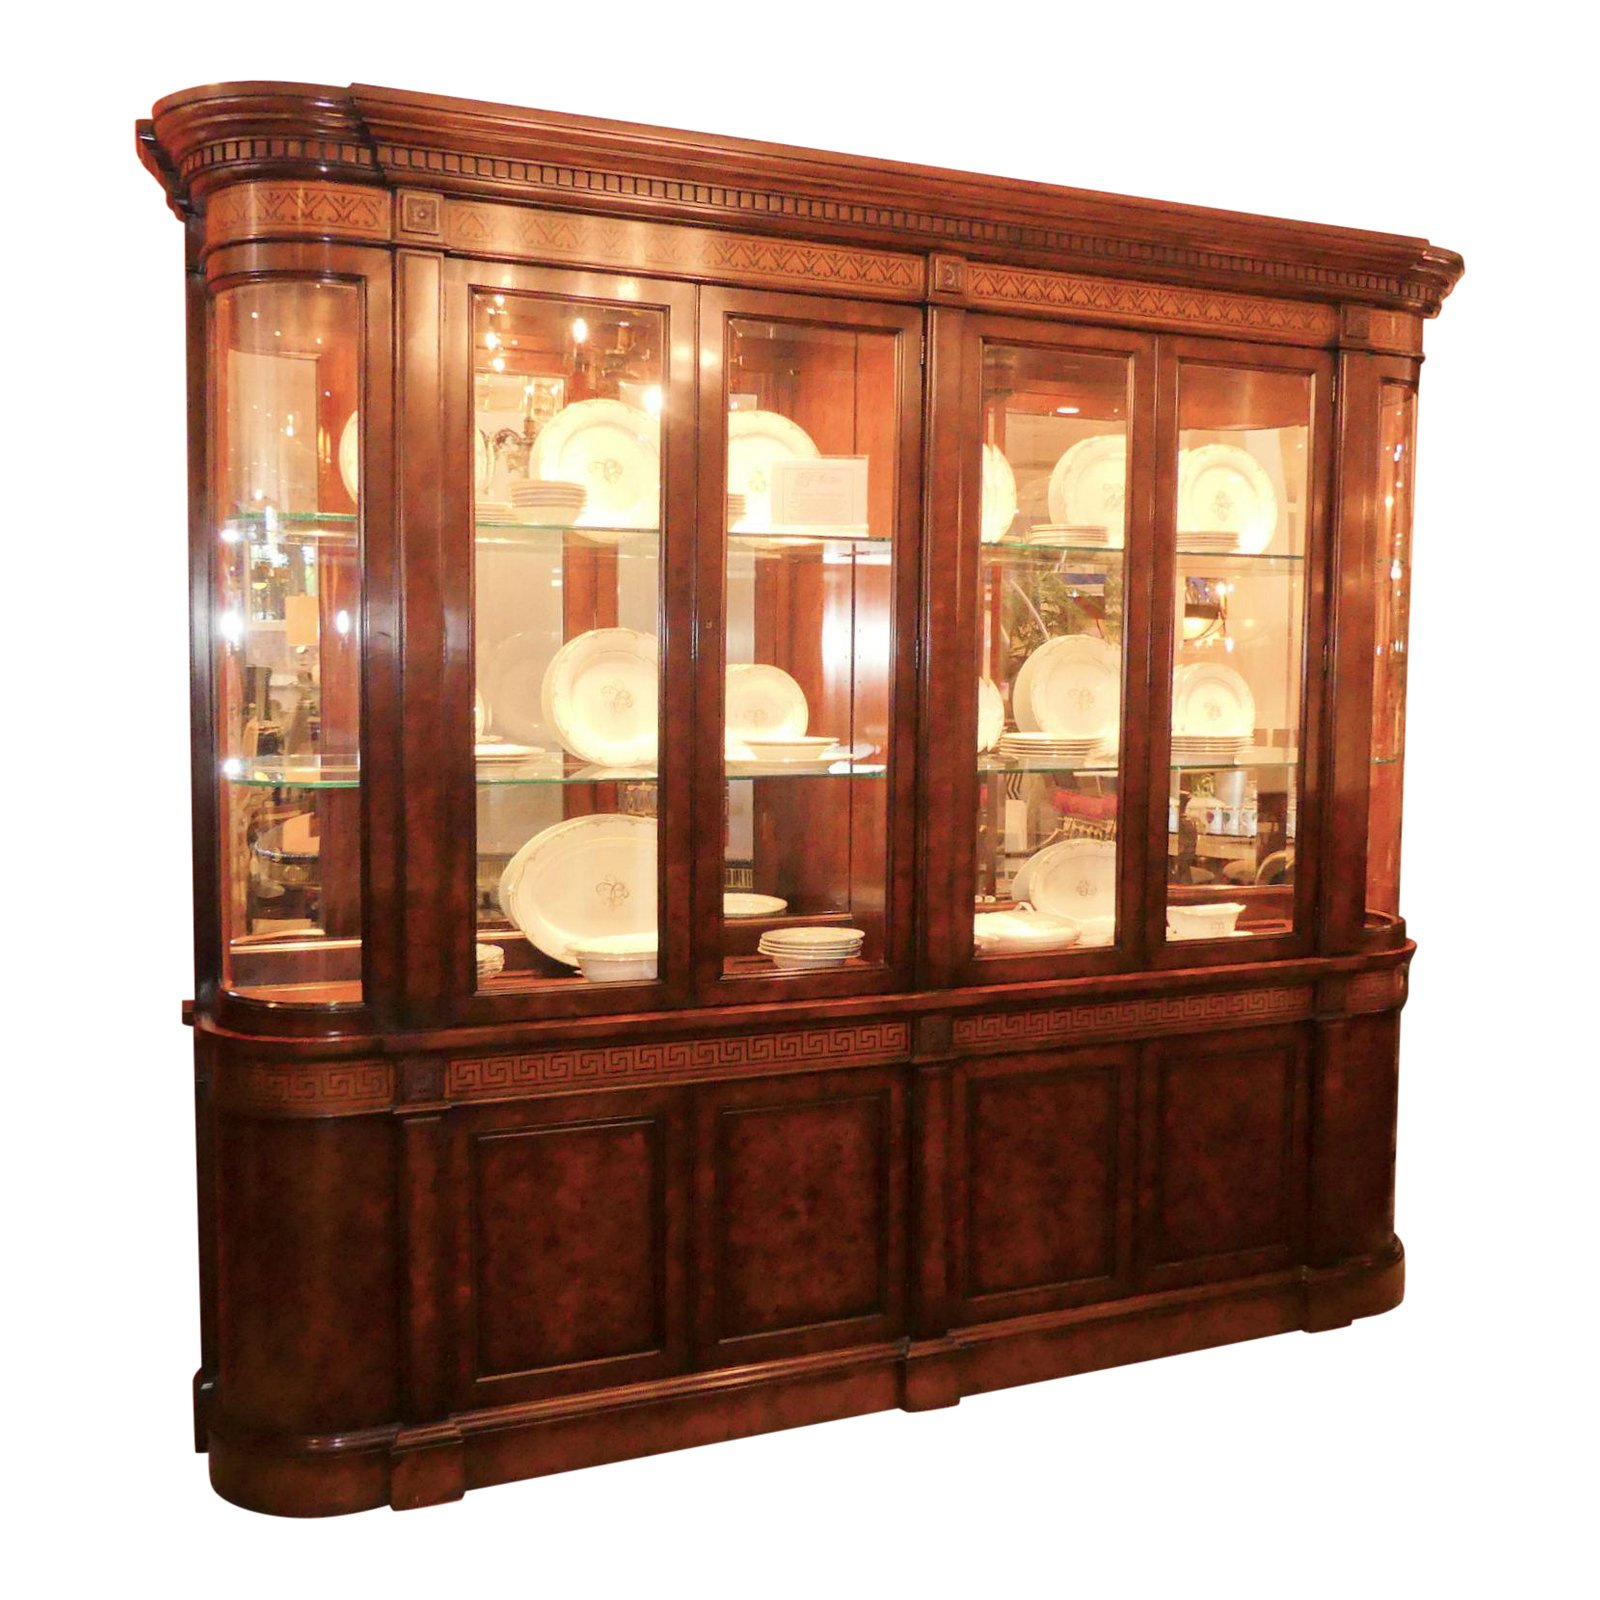 Traditional Walnut Burl Wood Lighted China Cabinet with Greek Key Inlay